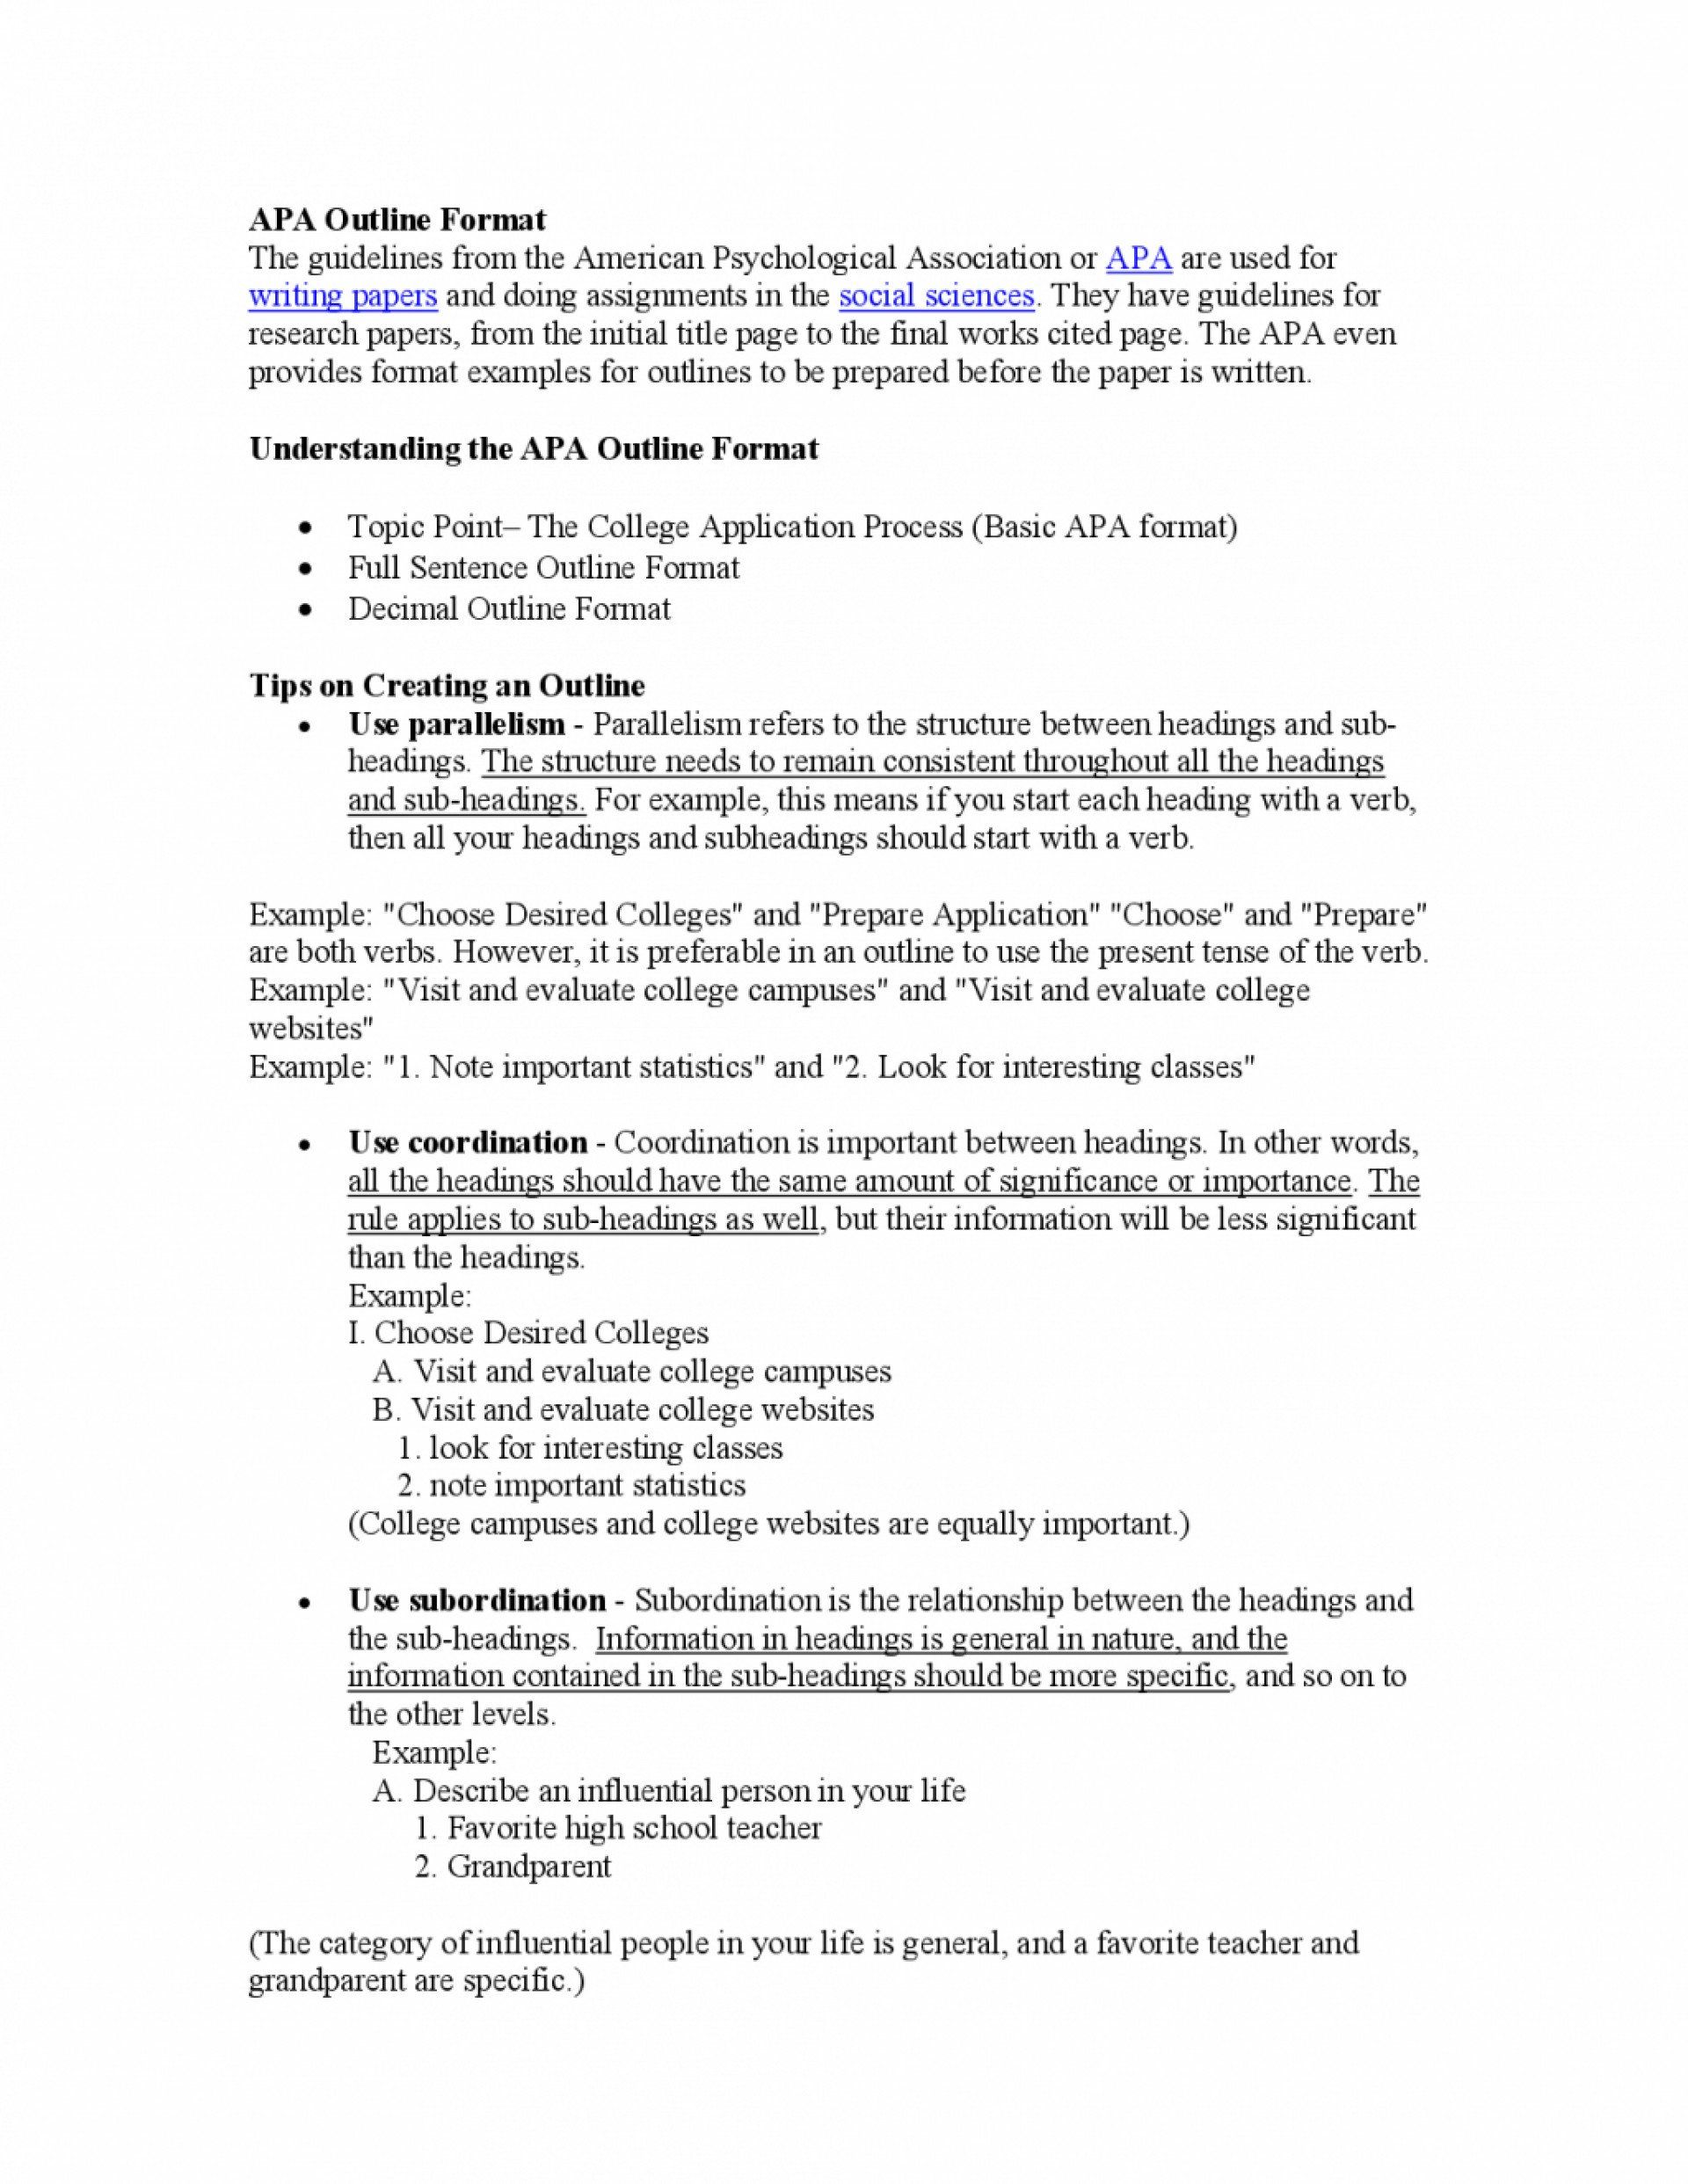 016 Research Paper 20examples Of Outlines For Papers In Apa Format Best Photos Style Outline Example Paper20 1024x1325 Dreaded Examples Template Sample 1920